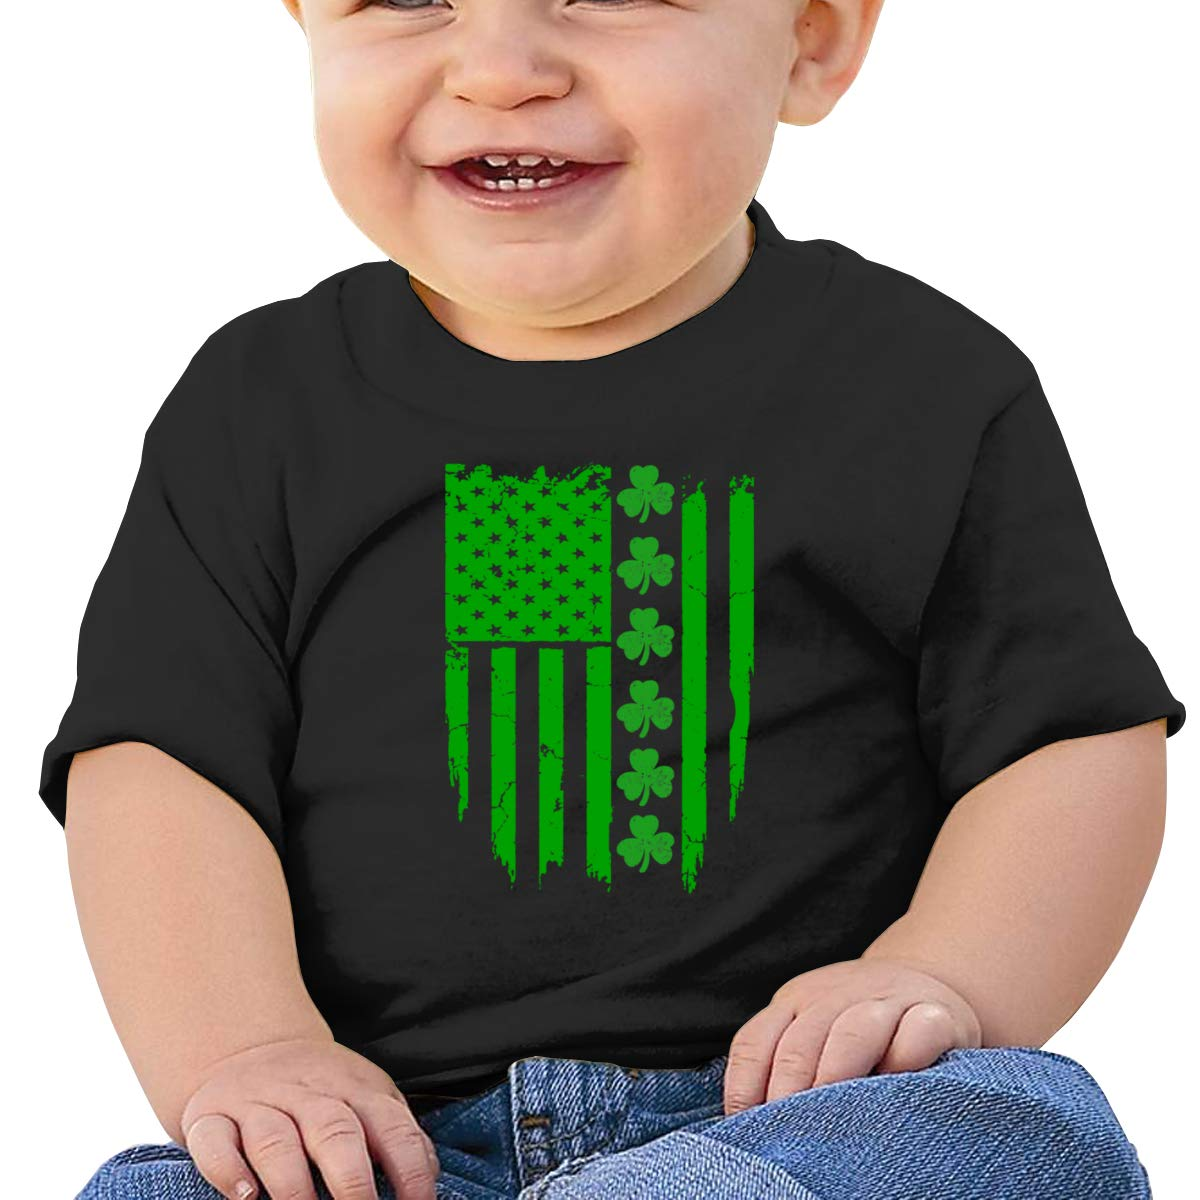 Qiop Nee Big Irish American Flag Short Sleeve T-Shirt Baby Boys